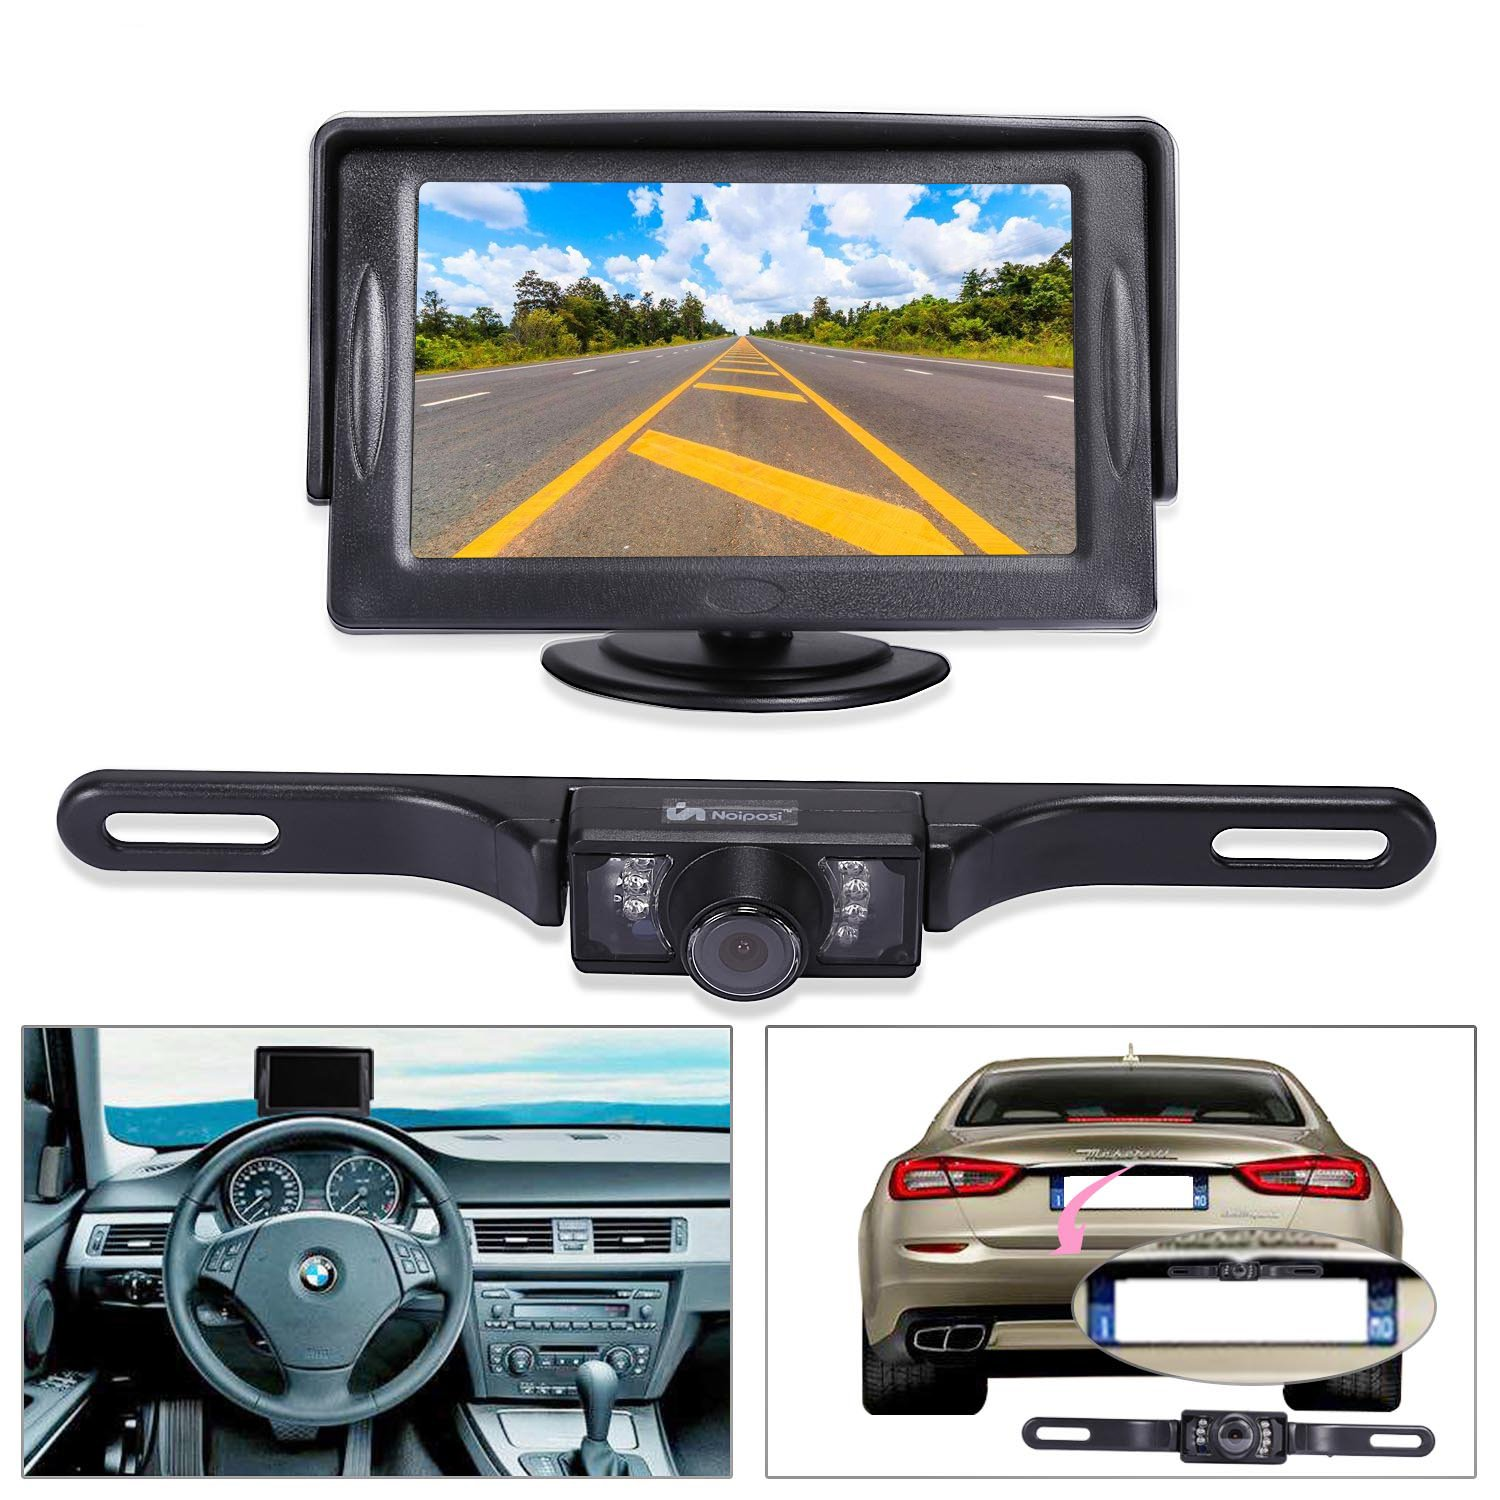 Noiposi Backup Camera And Monitor Kit For Car Universal Plcm7200 Wiring Diagram Waterproof Night Vision Linsence Plate Rear View 43 Tft Lcd